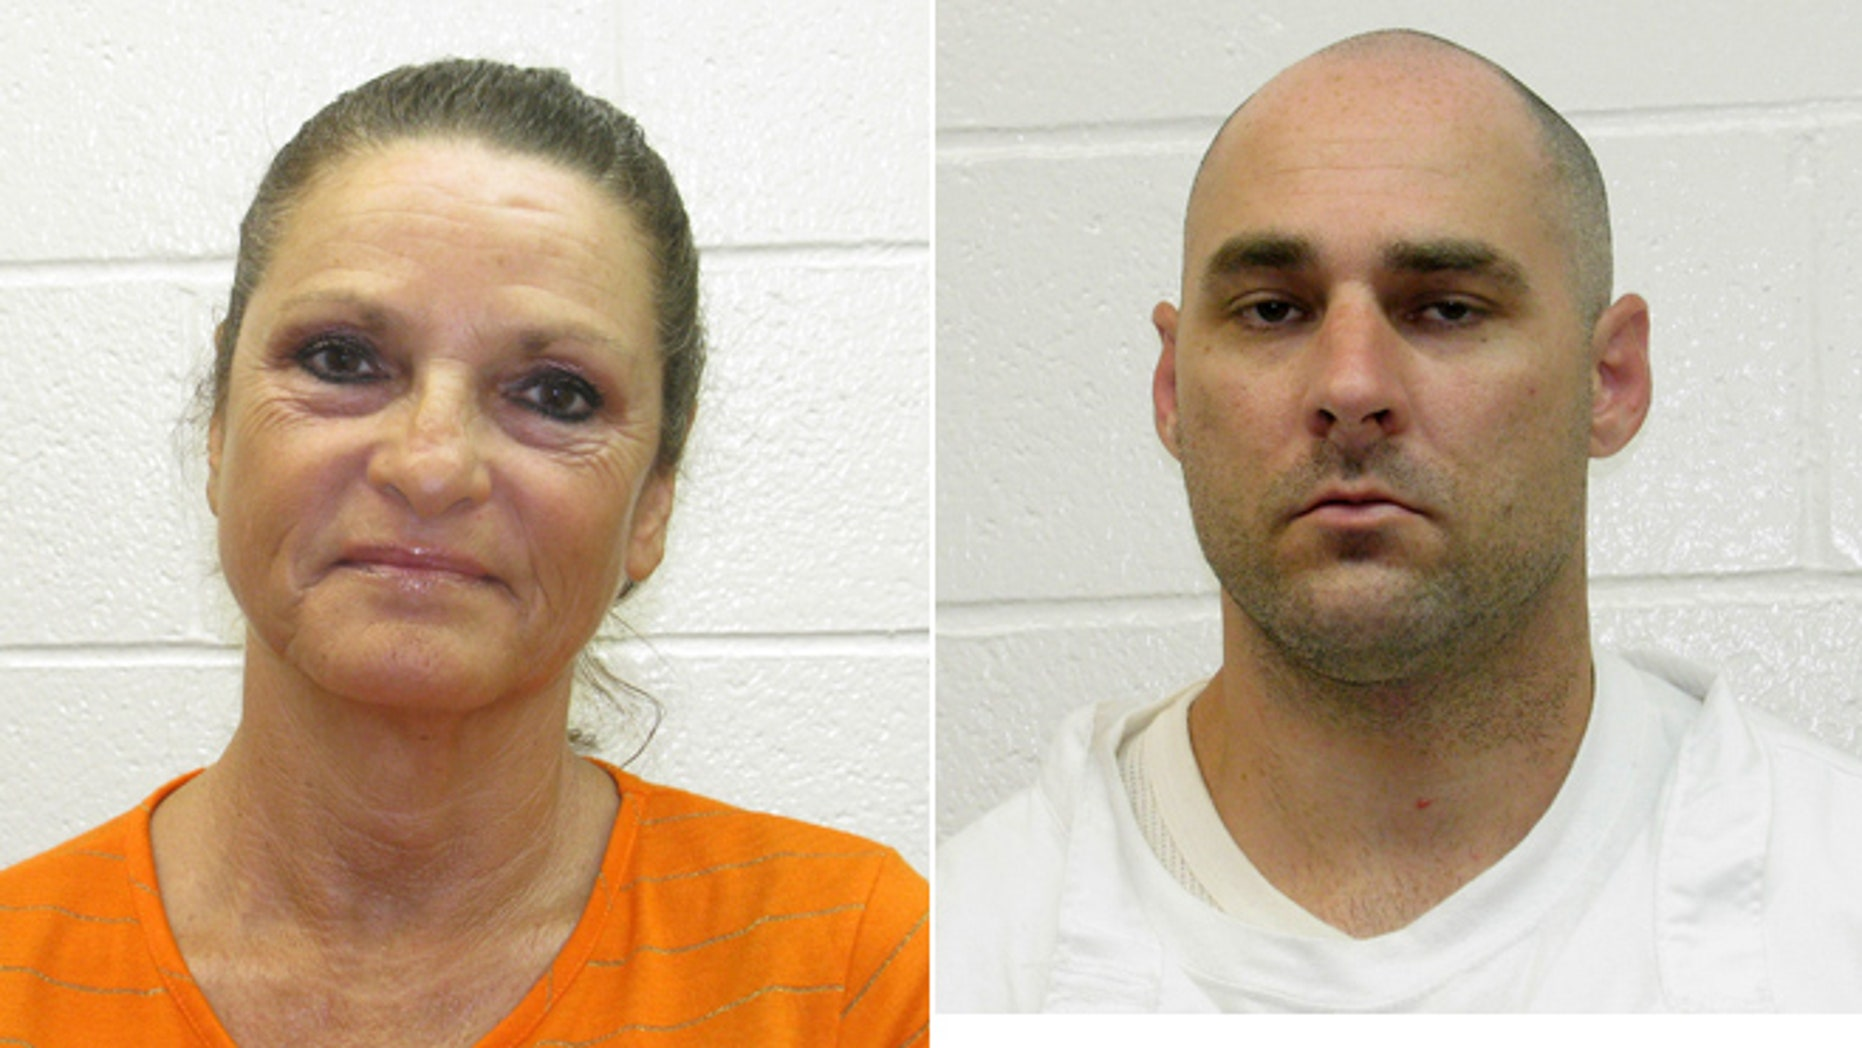 Glenda Estell, left, was arrested Friday for allegedly assisting in Derrick Estell's escape from the Garland County Detention Center on July 28, 2013.